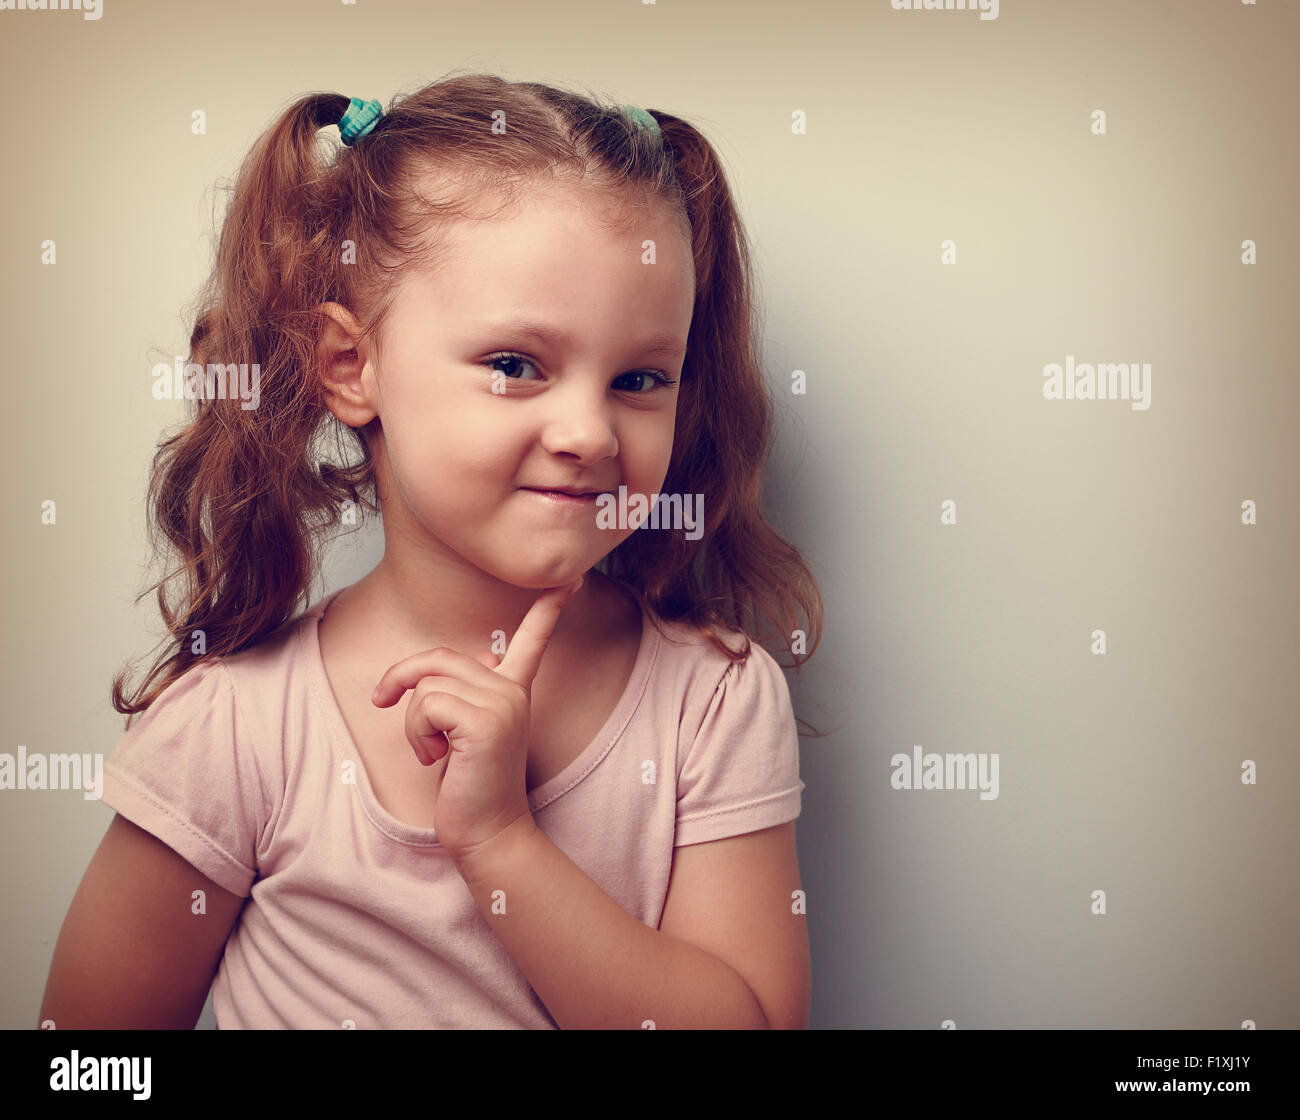 Cunning thinking small kid girl with finger near face looking. Vintage closeup portrait - Stock Image